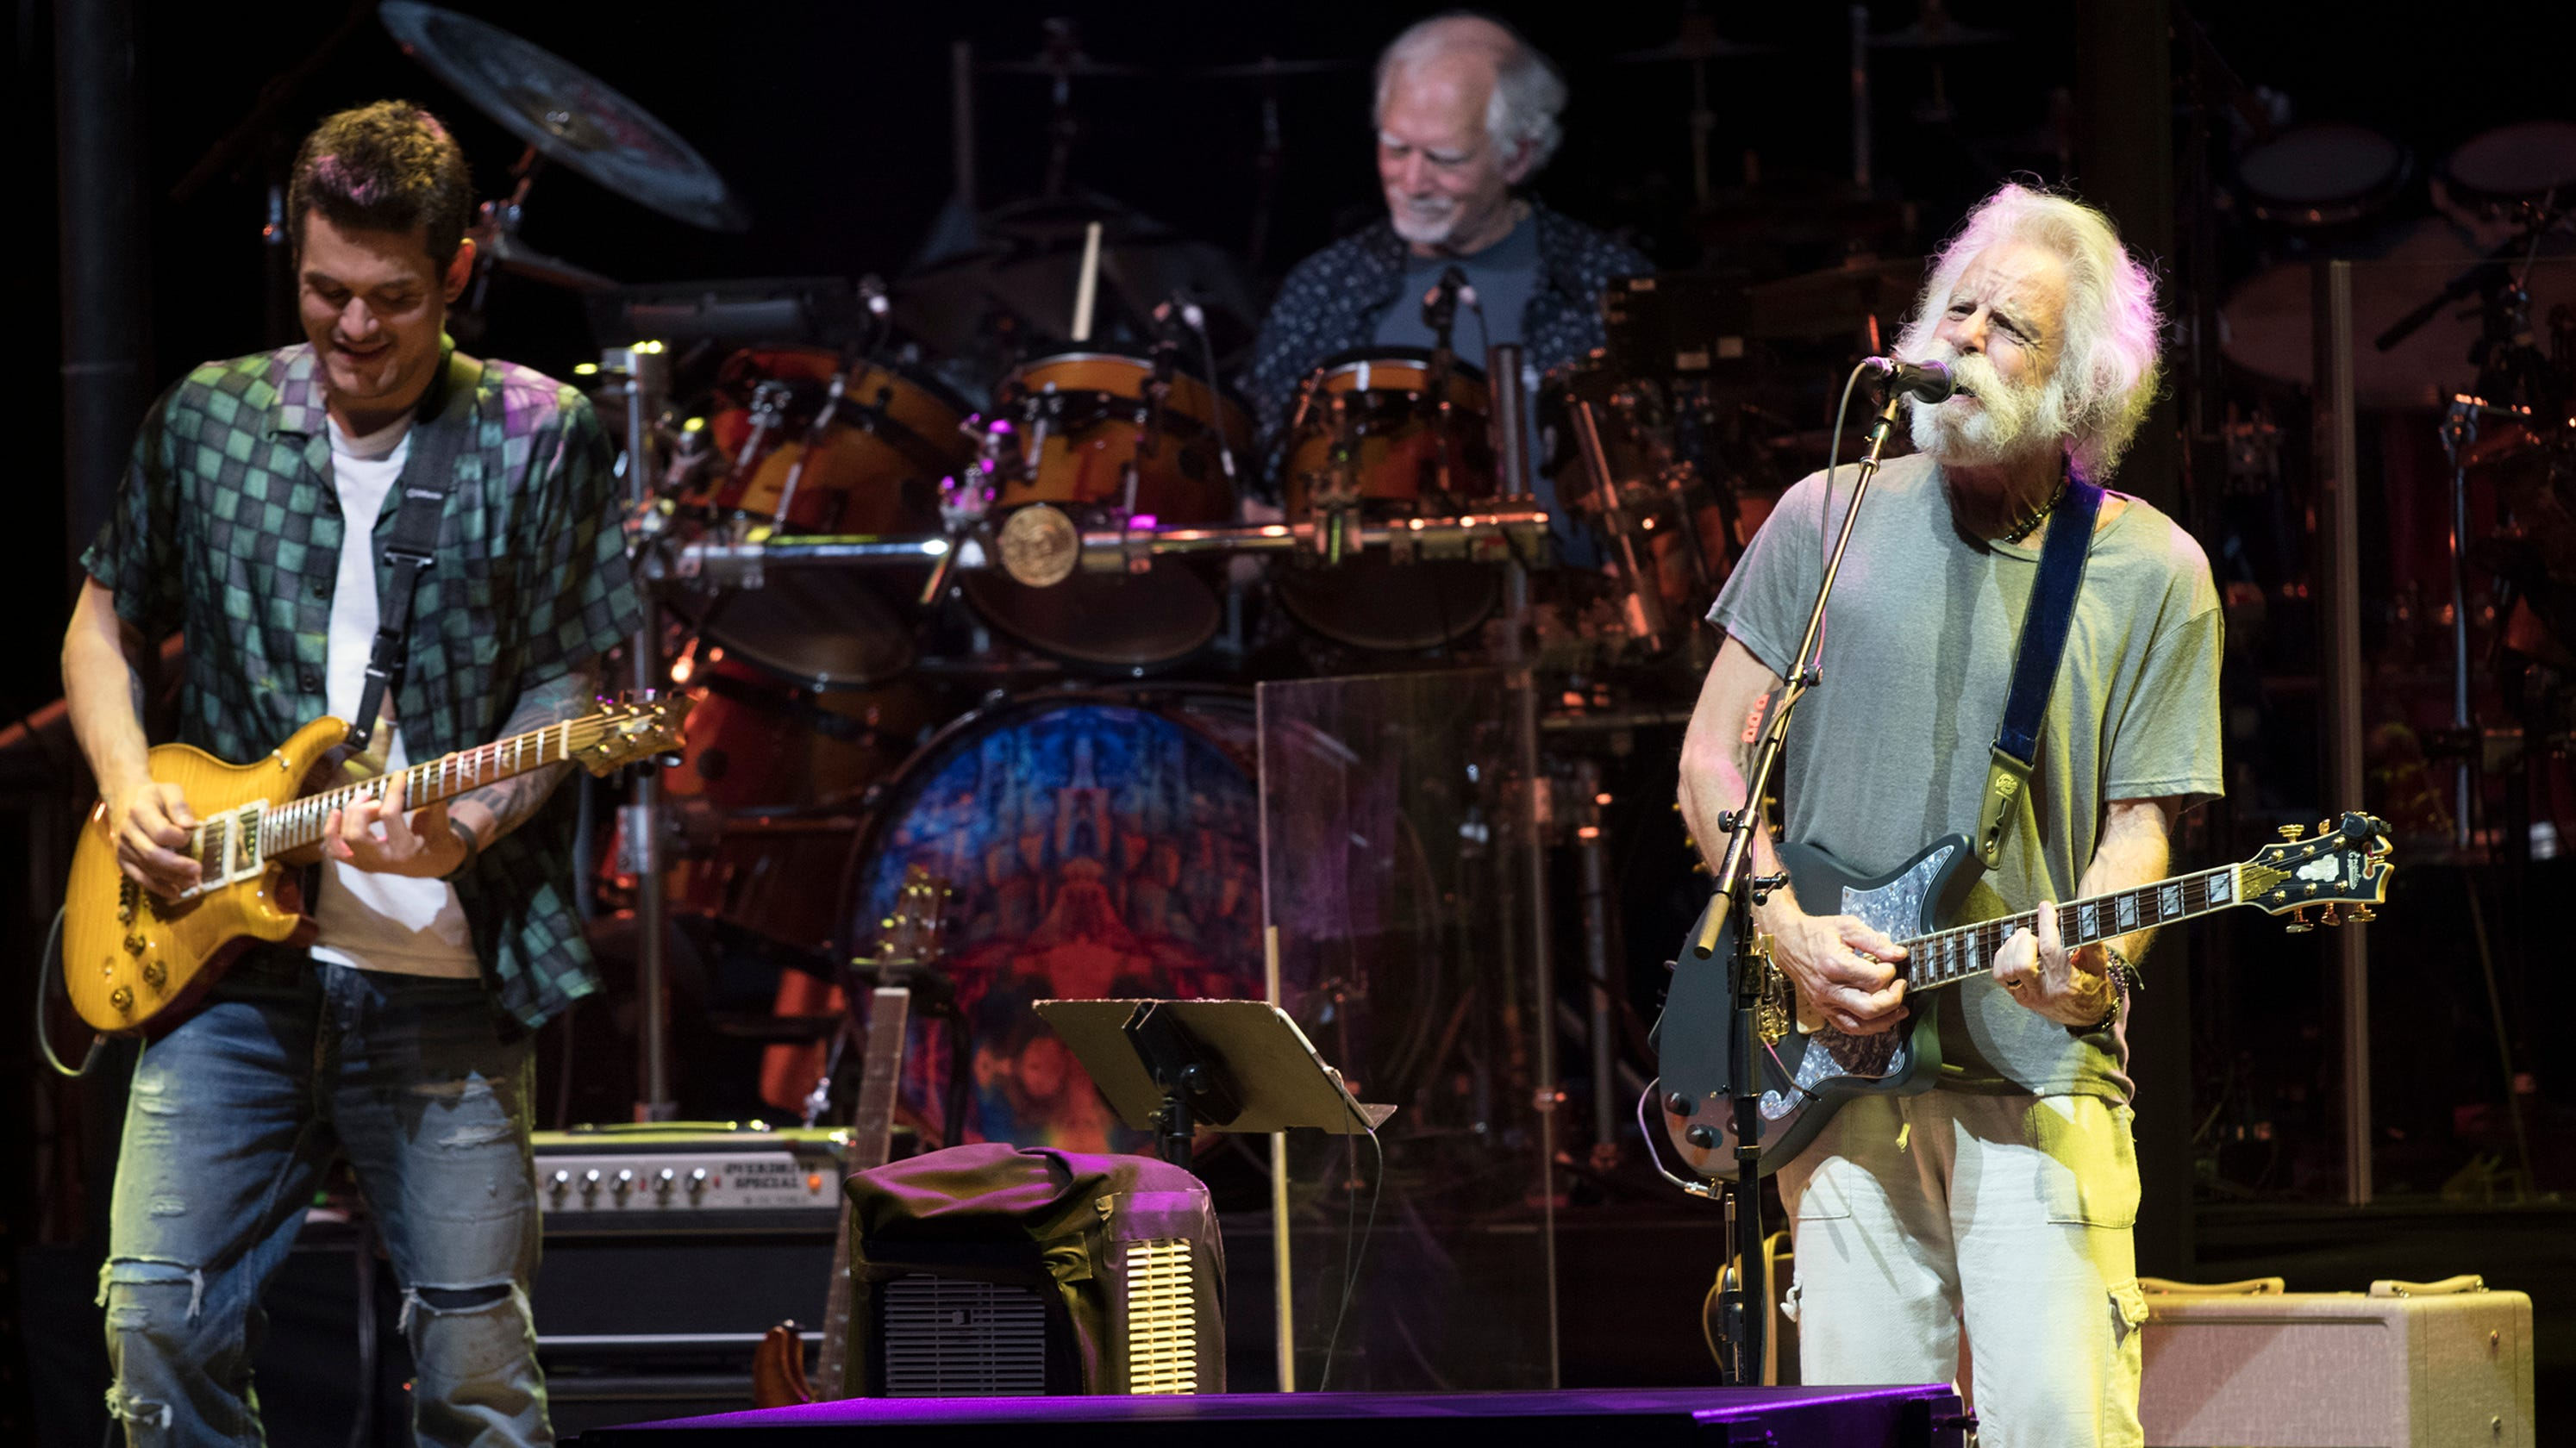 Dead and Company: Setlist, photos, review from Camden BB&T